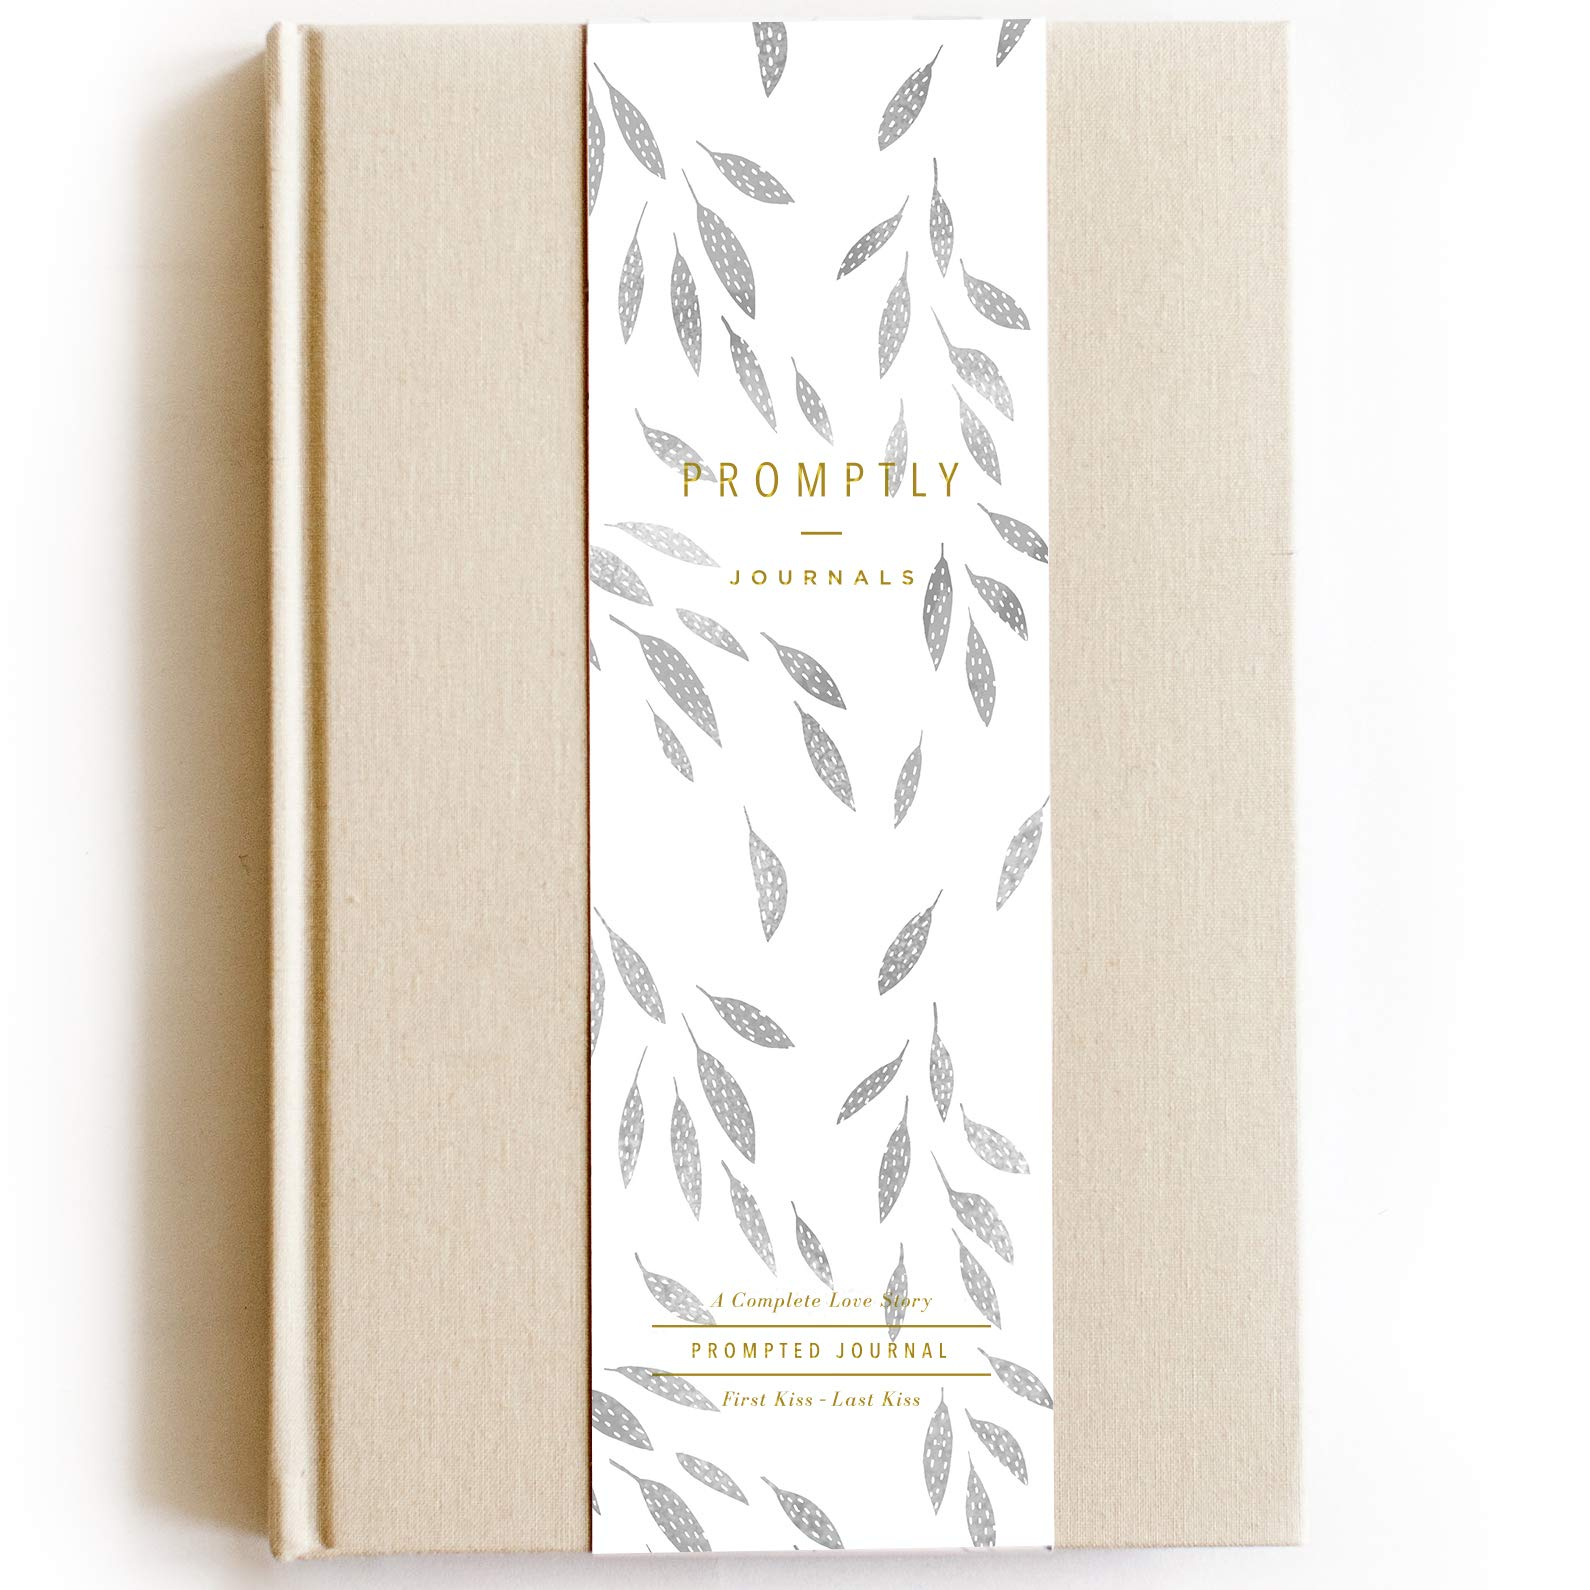 Promptly Journals - Love Story Relationship & Marriage Journal, Hundreds of Meaningful Prompts, Covers from When The Couple Met Until Their 70th Anniversary (Sand) by Promptly Journals